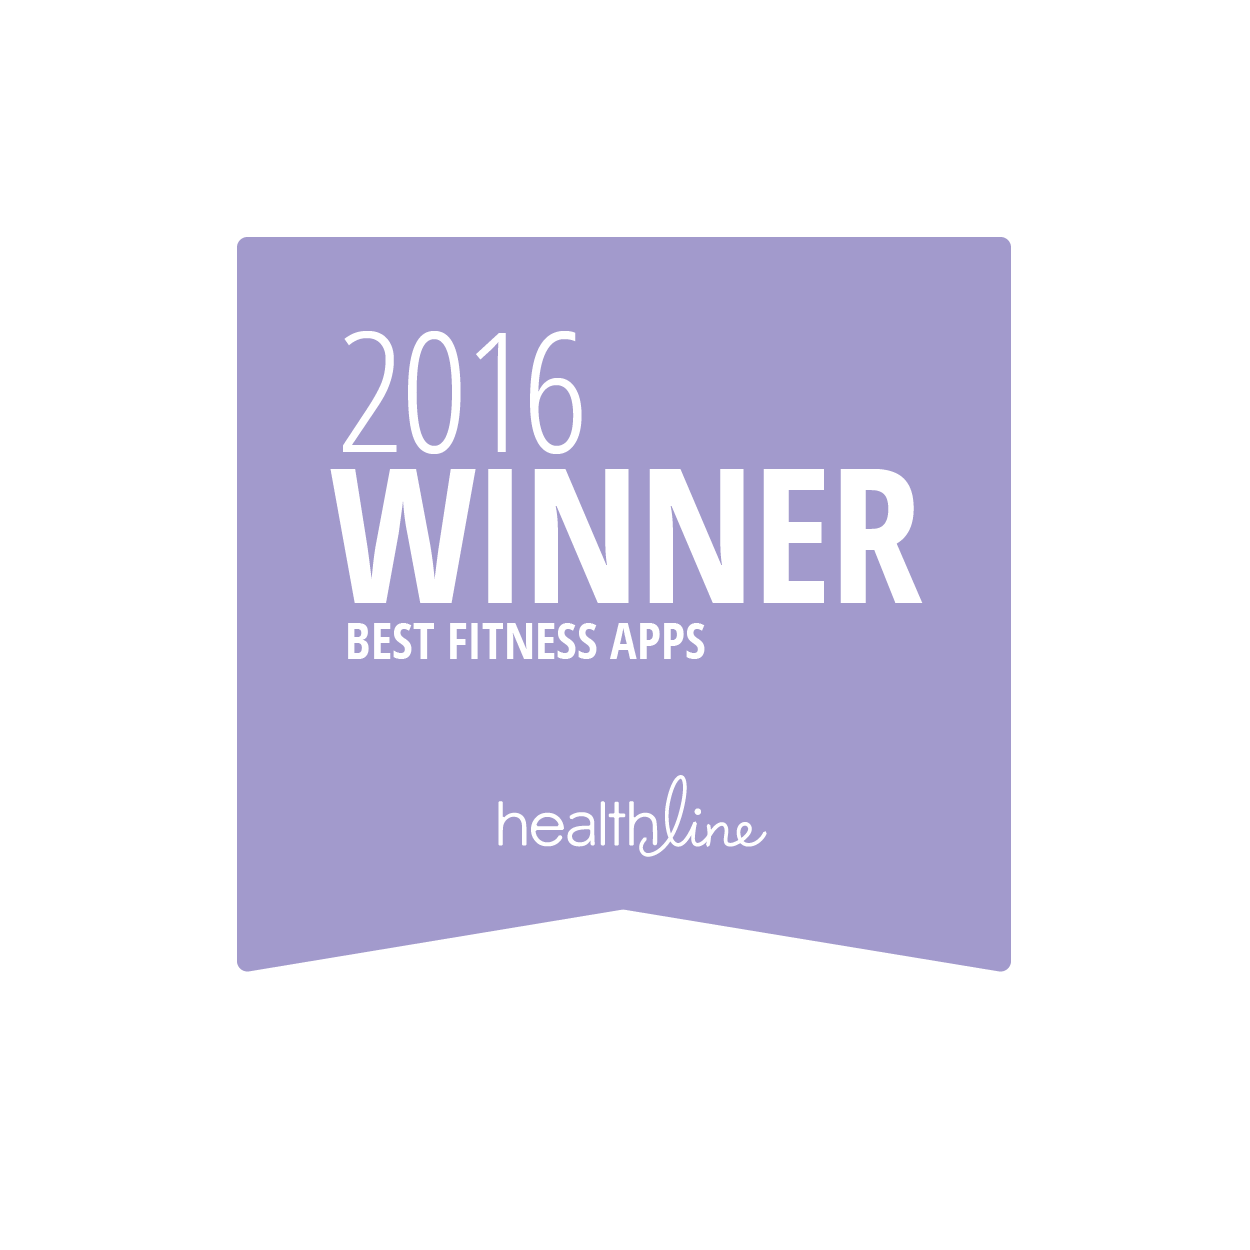 The Best Fitness Apps of 2016